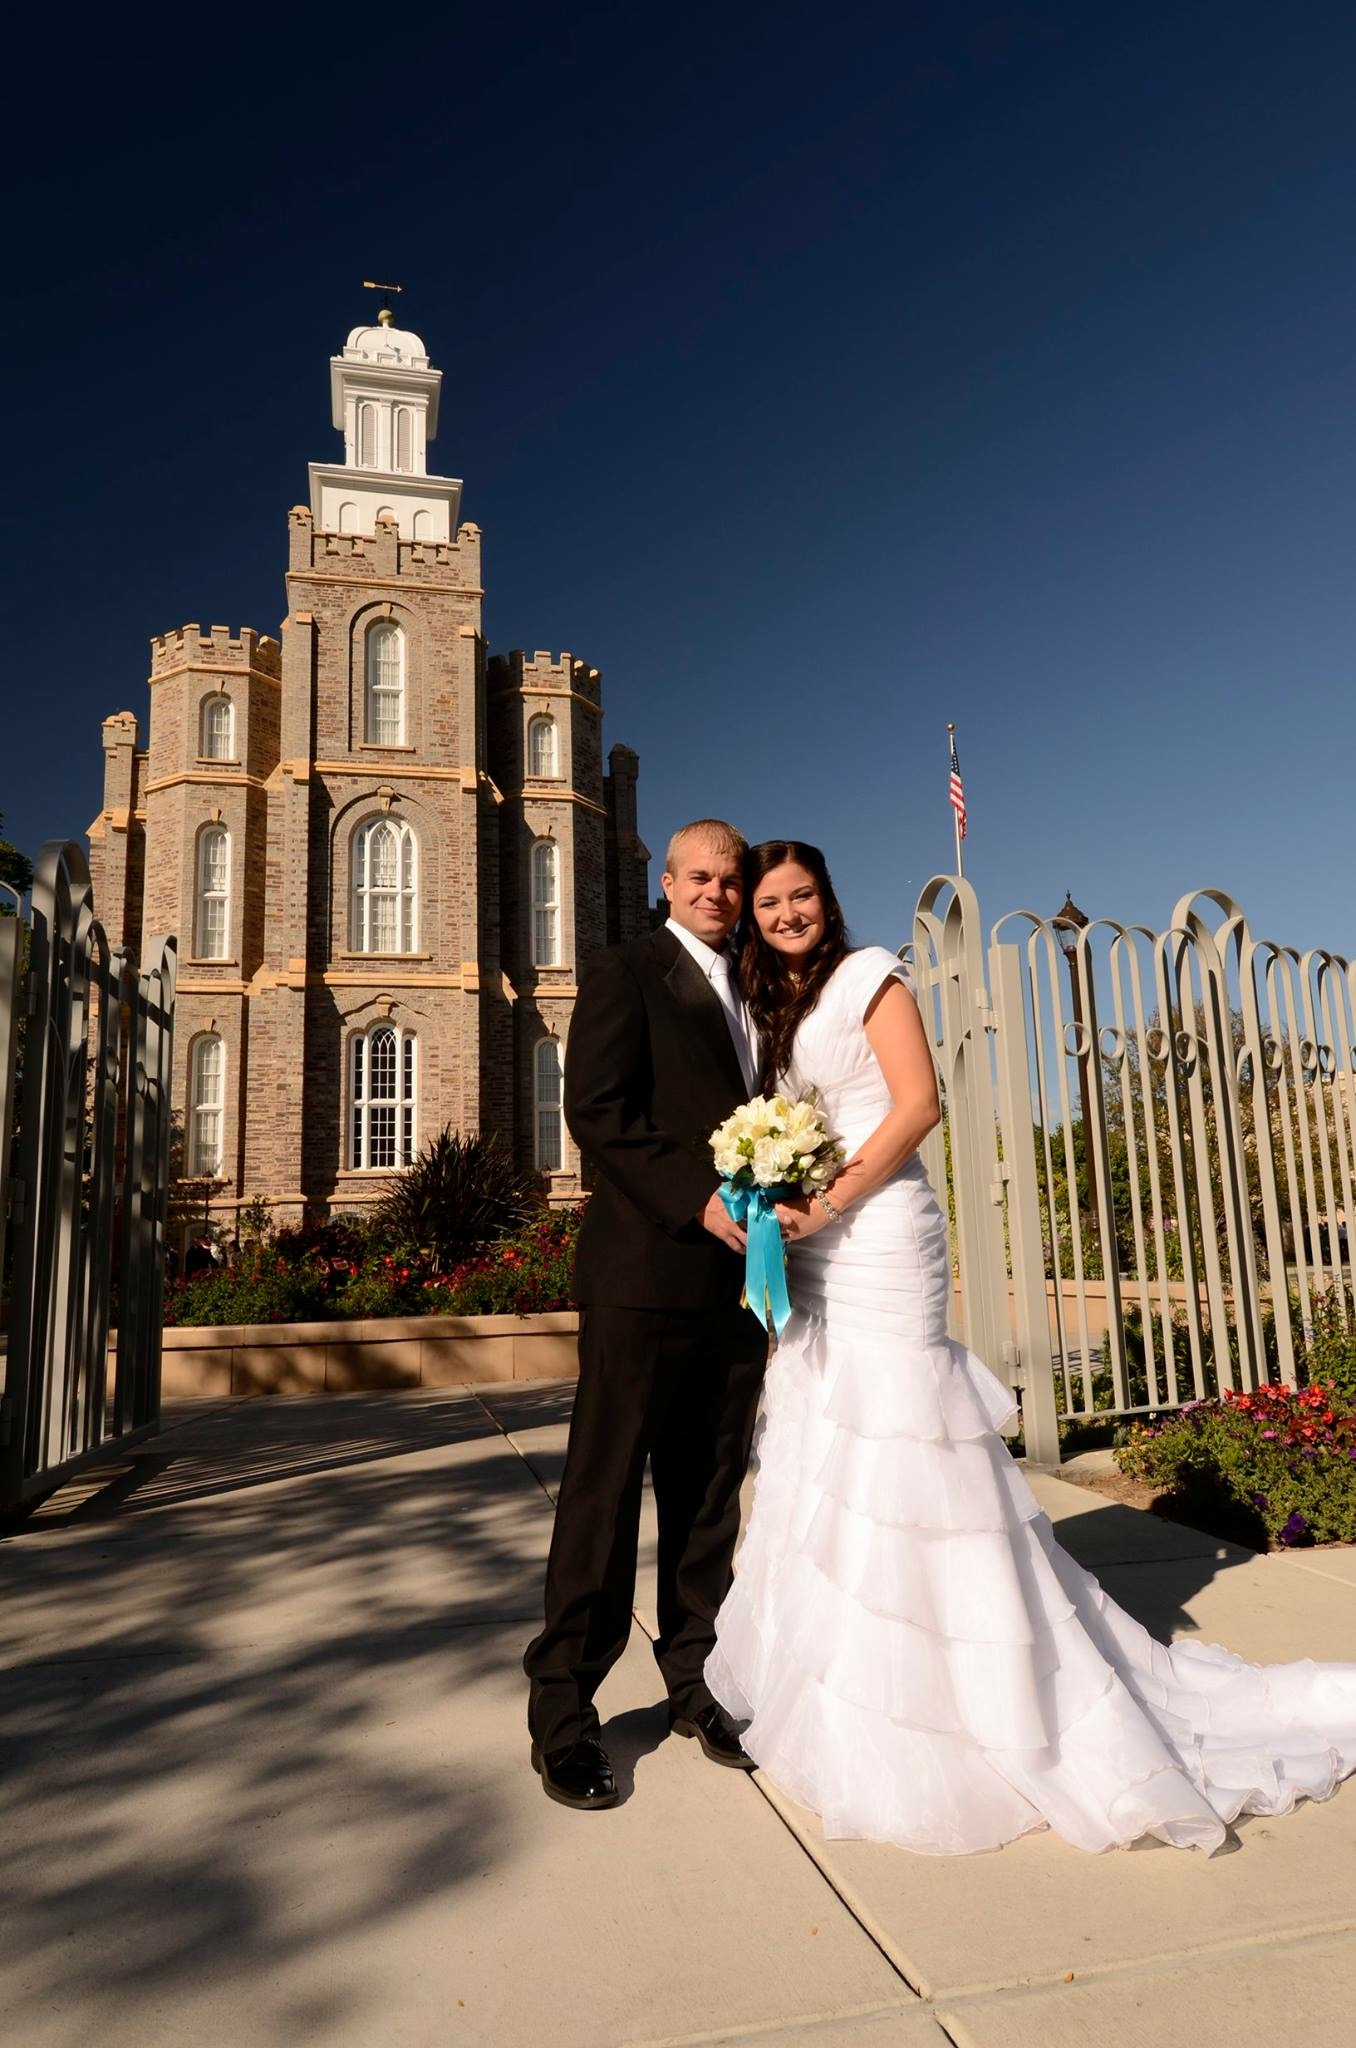 A.J. and Sarah Edwards were married in the Logan Utah Temple seven years ago.